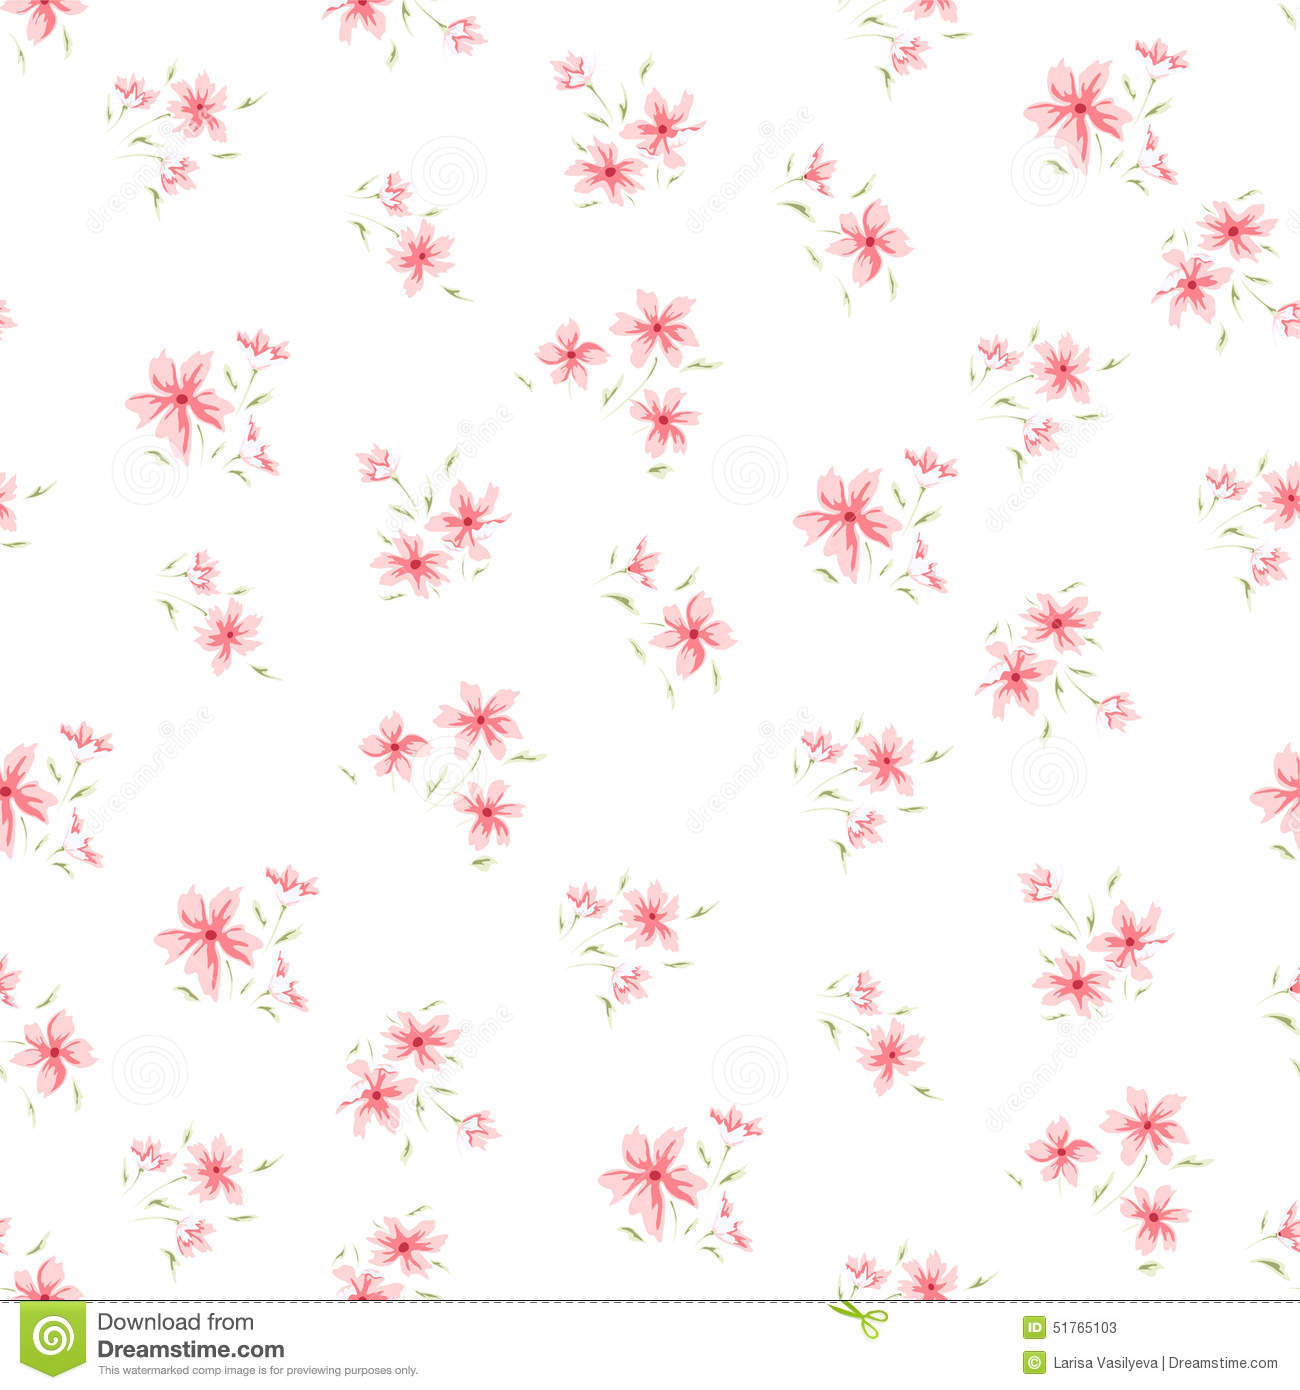 Simple flower pattern background - photo#7